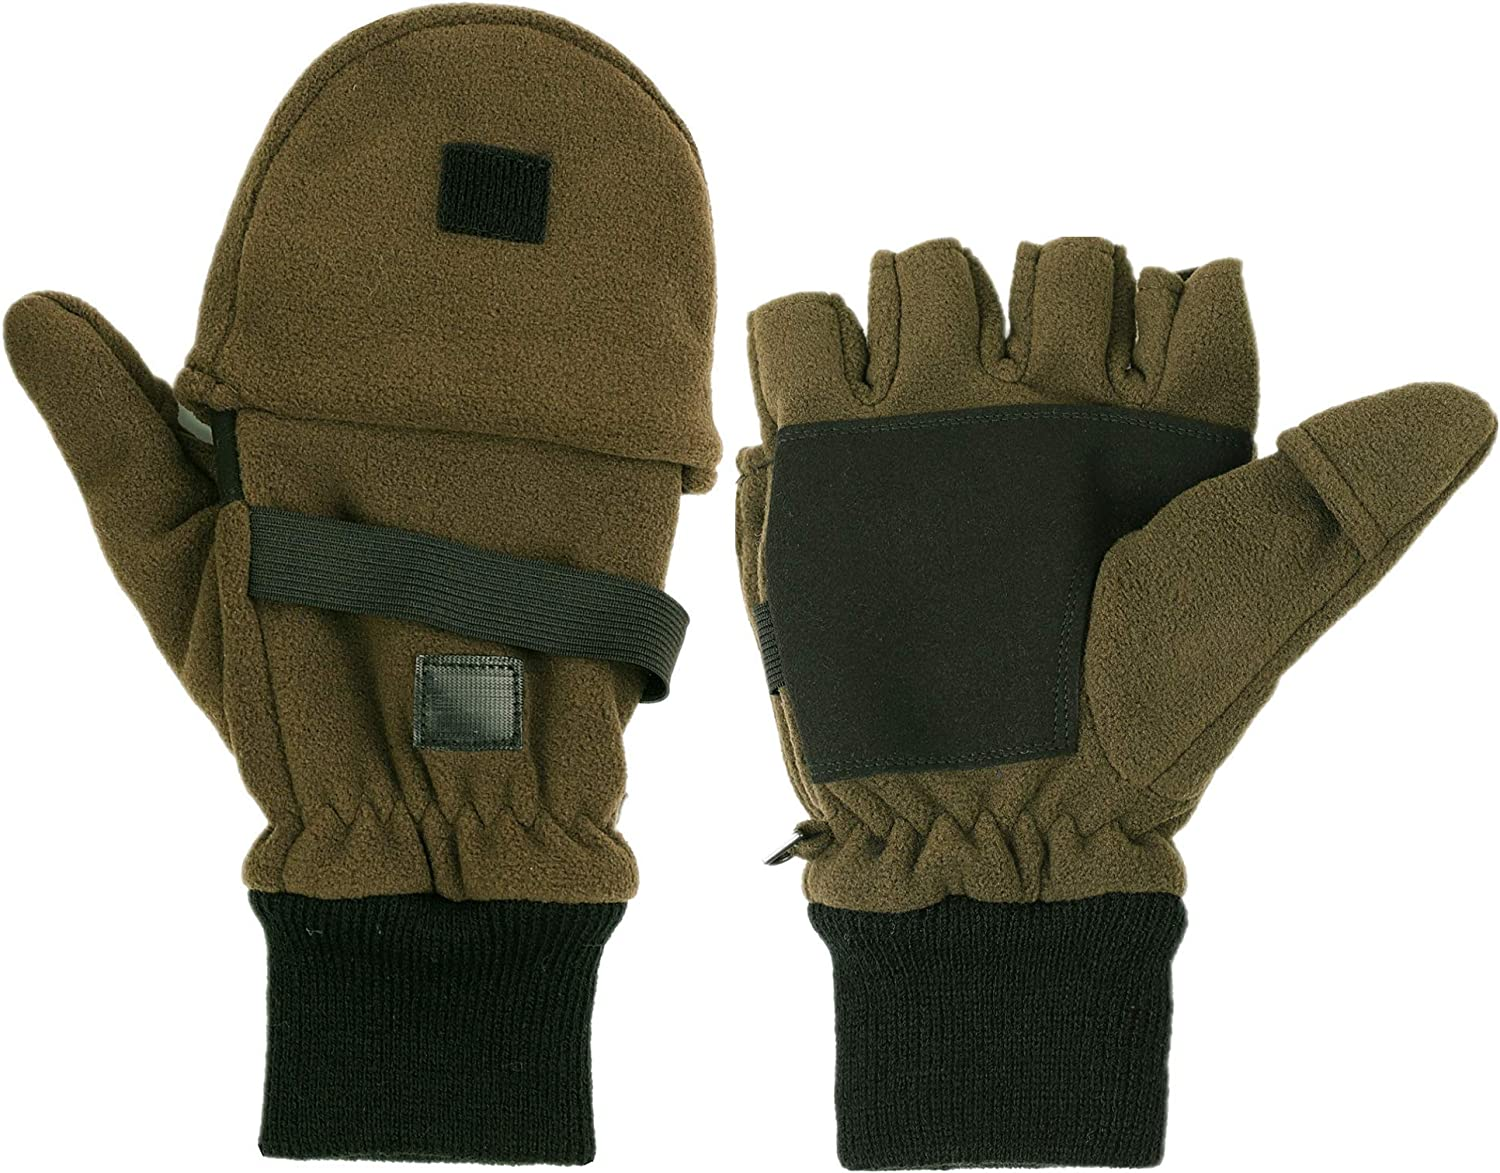 Mens 3M Thinsulate Fleece Mittens with Fingers Cold Weather Convertible Mittens Half Finger Thermal Gloves Winter